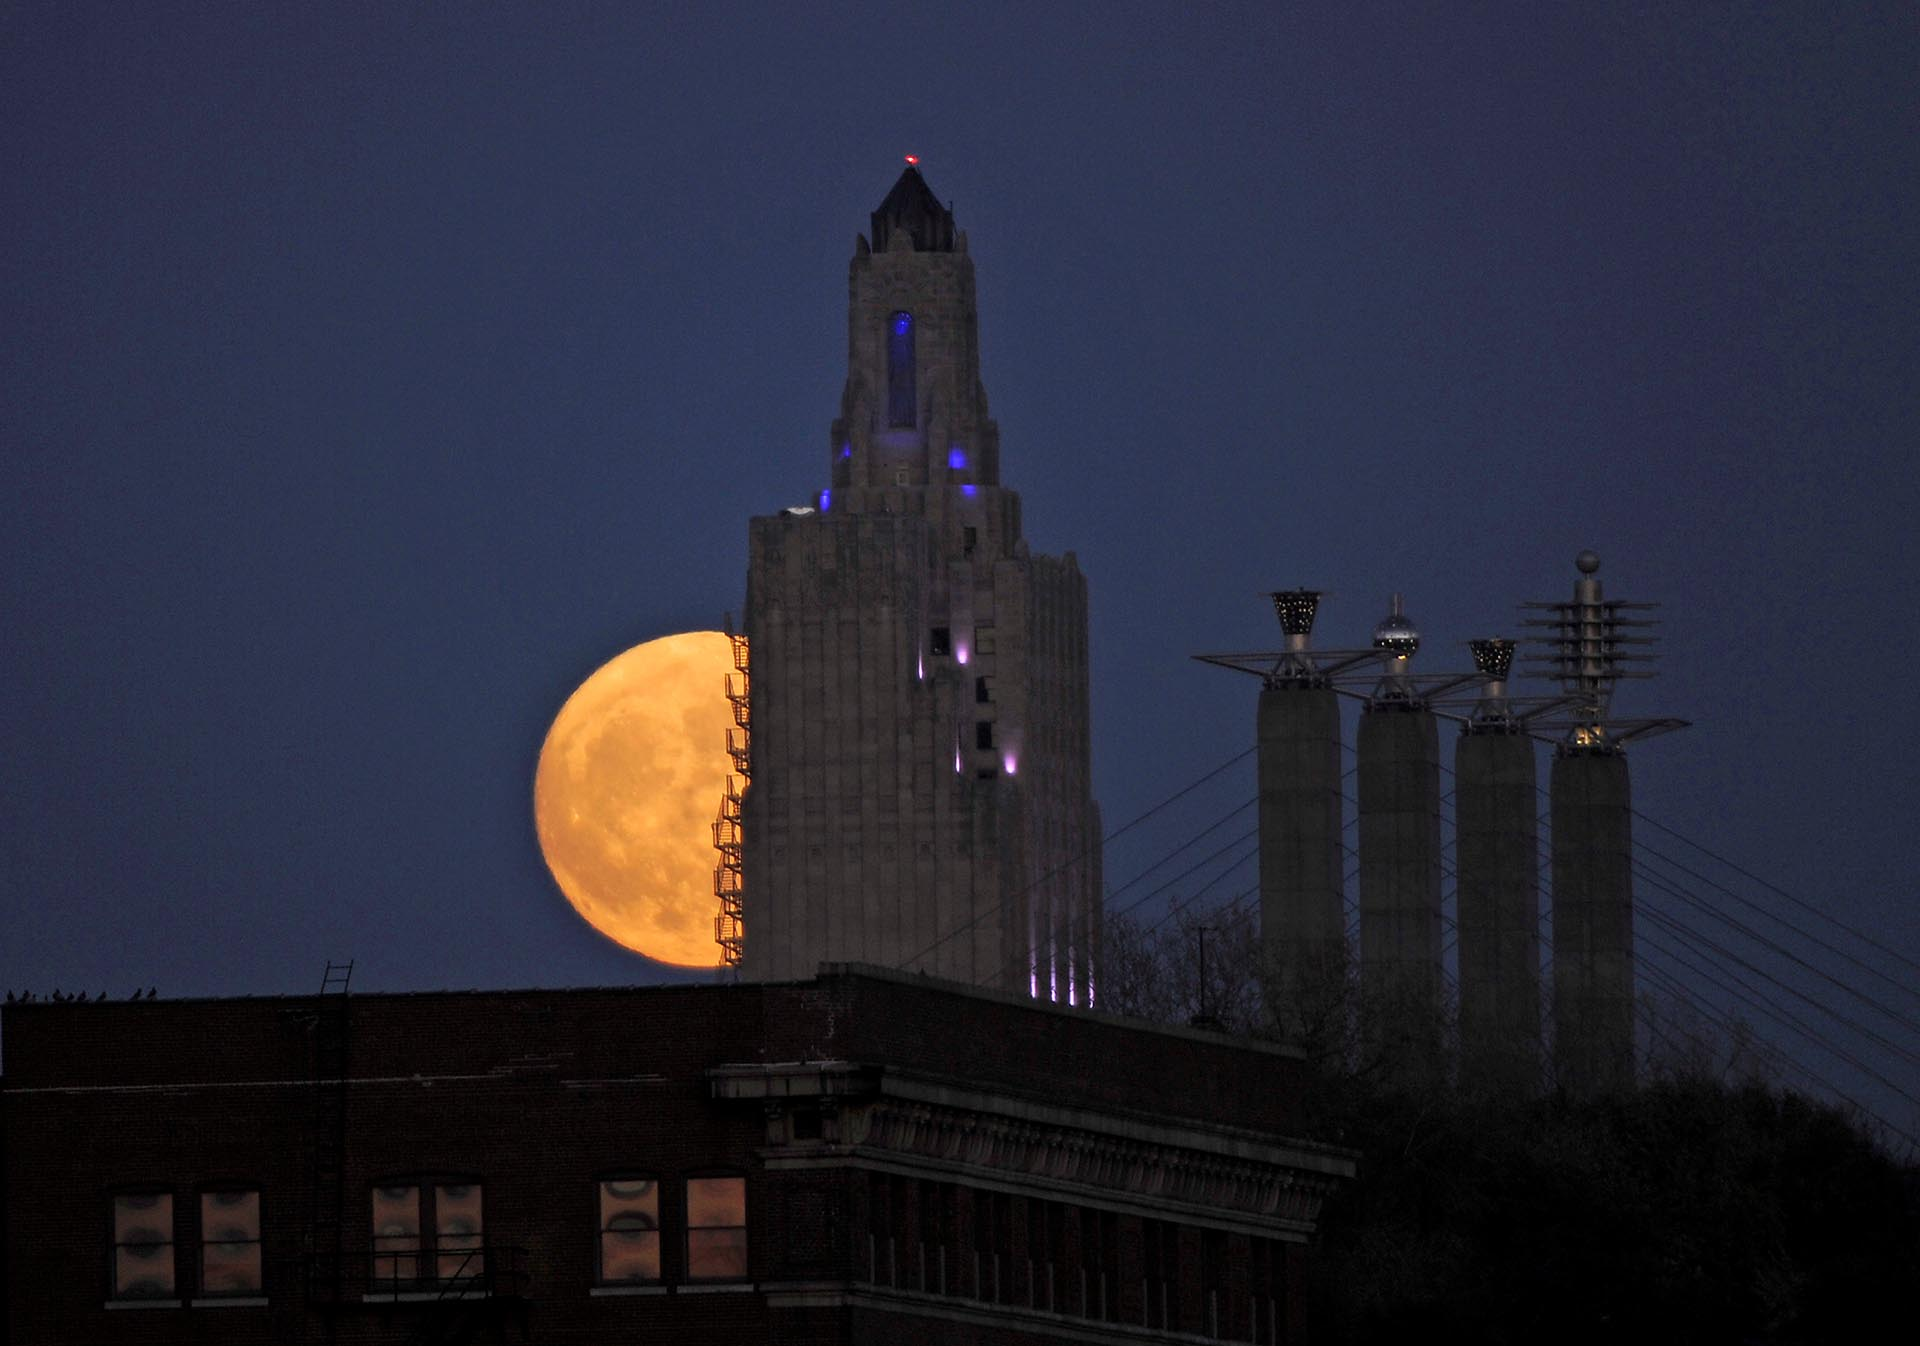 """The """"supermoon"""", the closest the moon comes to Earth since 1948, rises over the Power and Light building in downtown Kansas City, Missouri, U.S., November 13, 2016. REUTERS/Dave Kaup"""